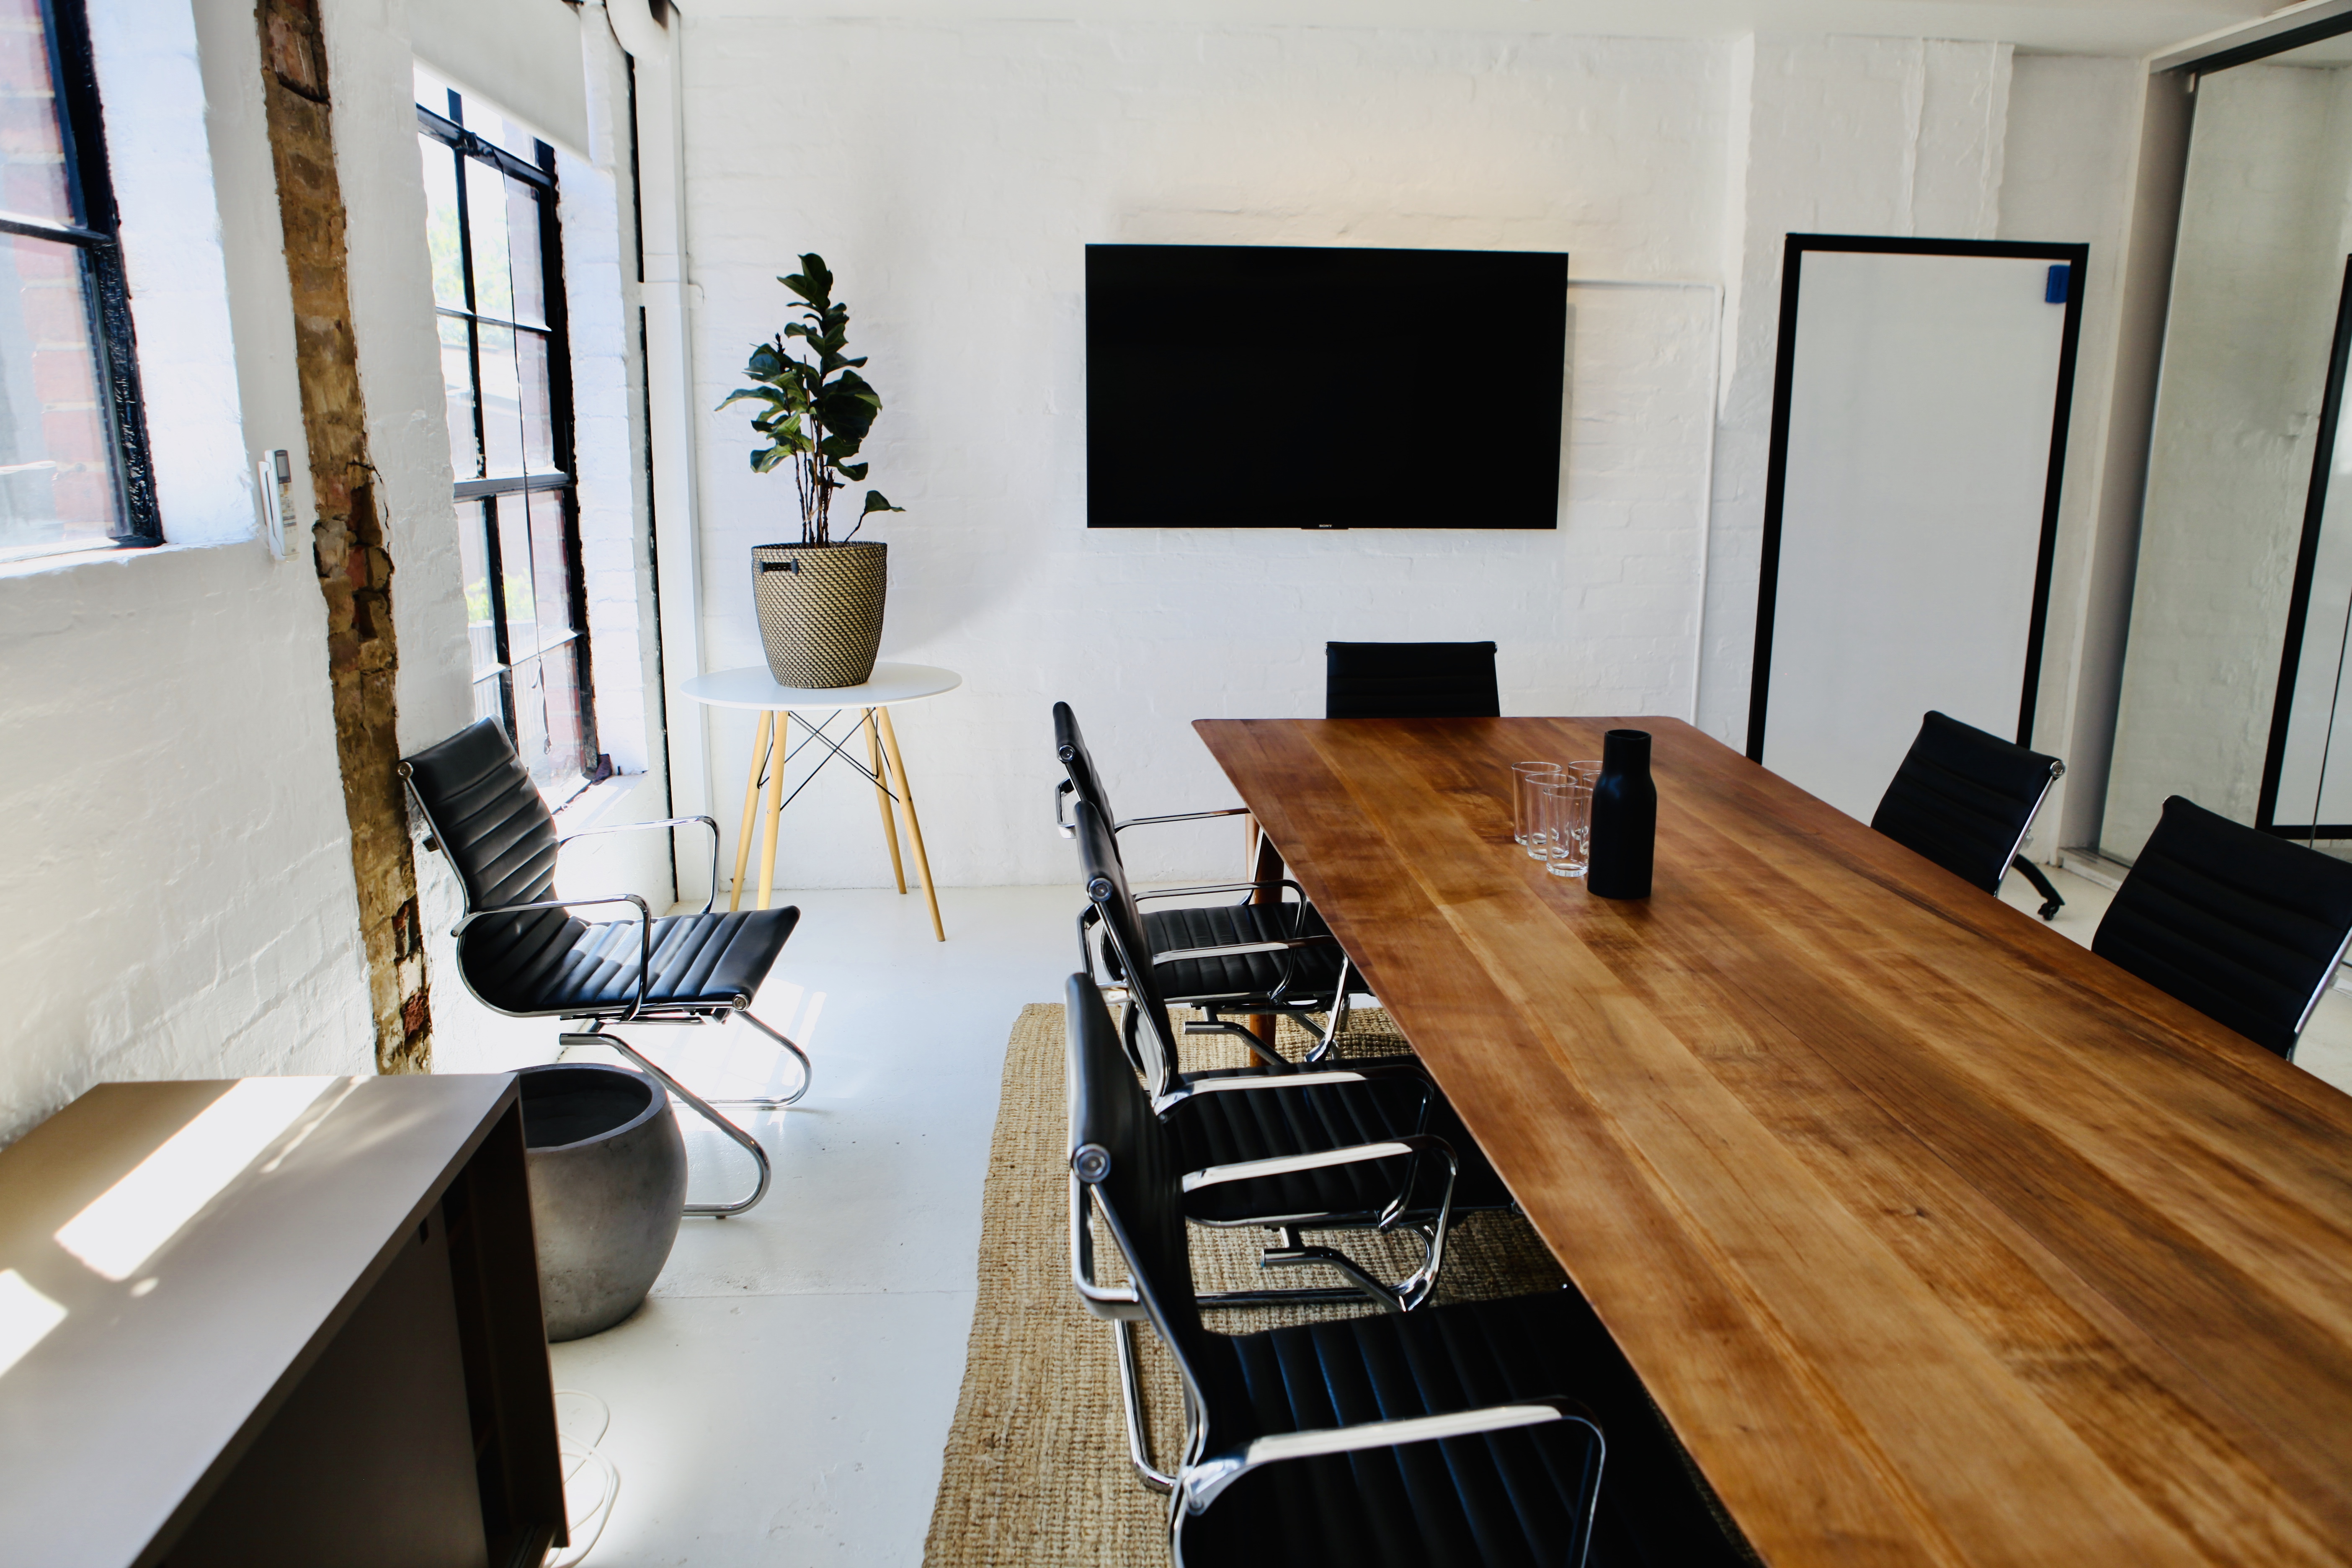 The board room for hire at Service Cowork, featuring an oak 12-person table, Apple TV and a large portable whiteboard